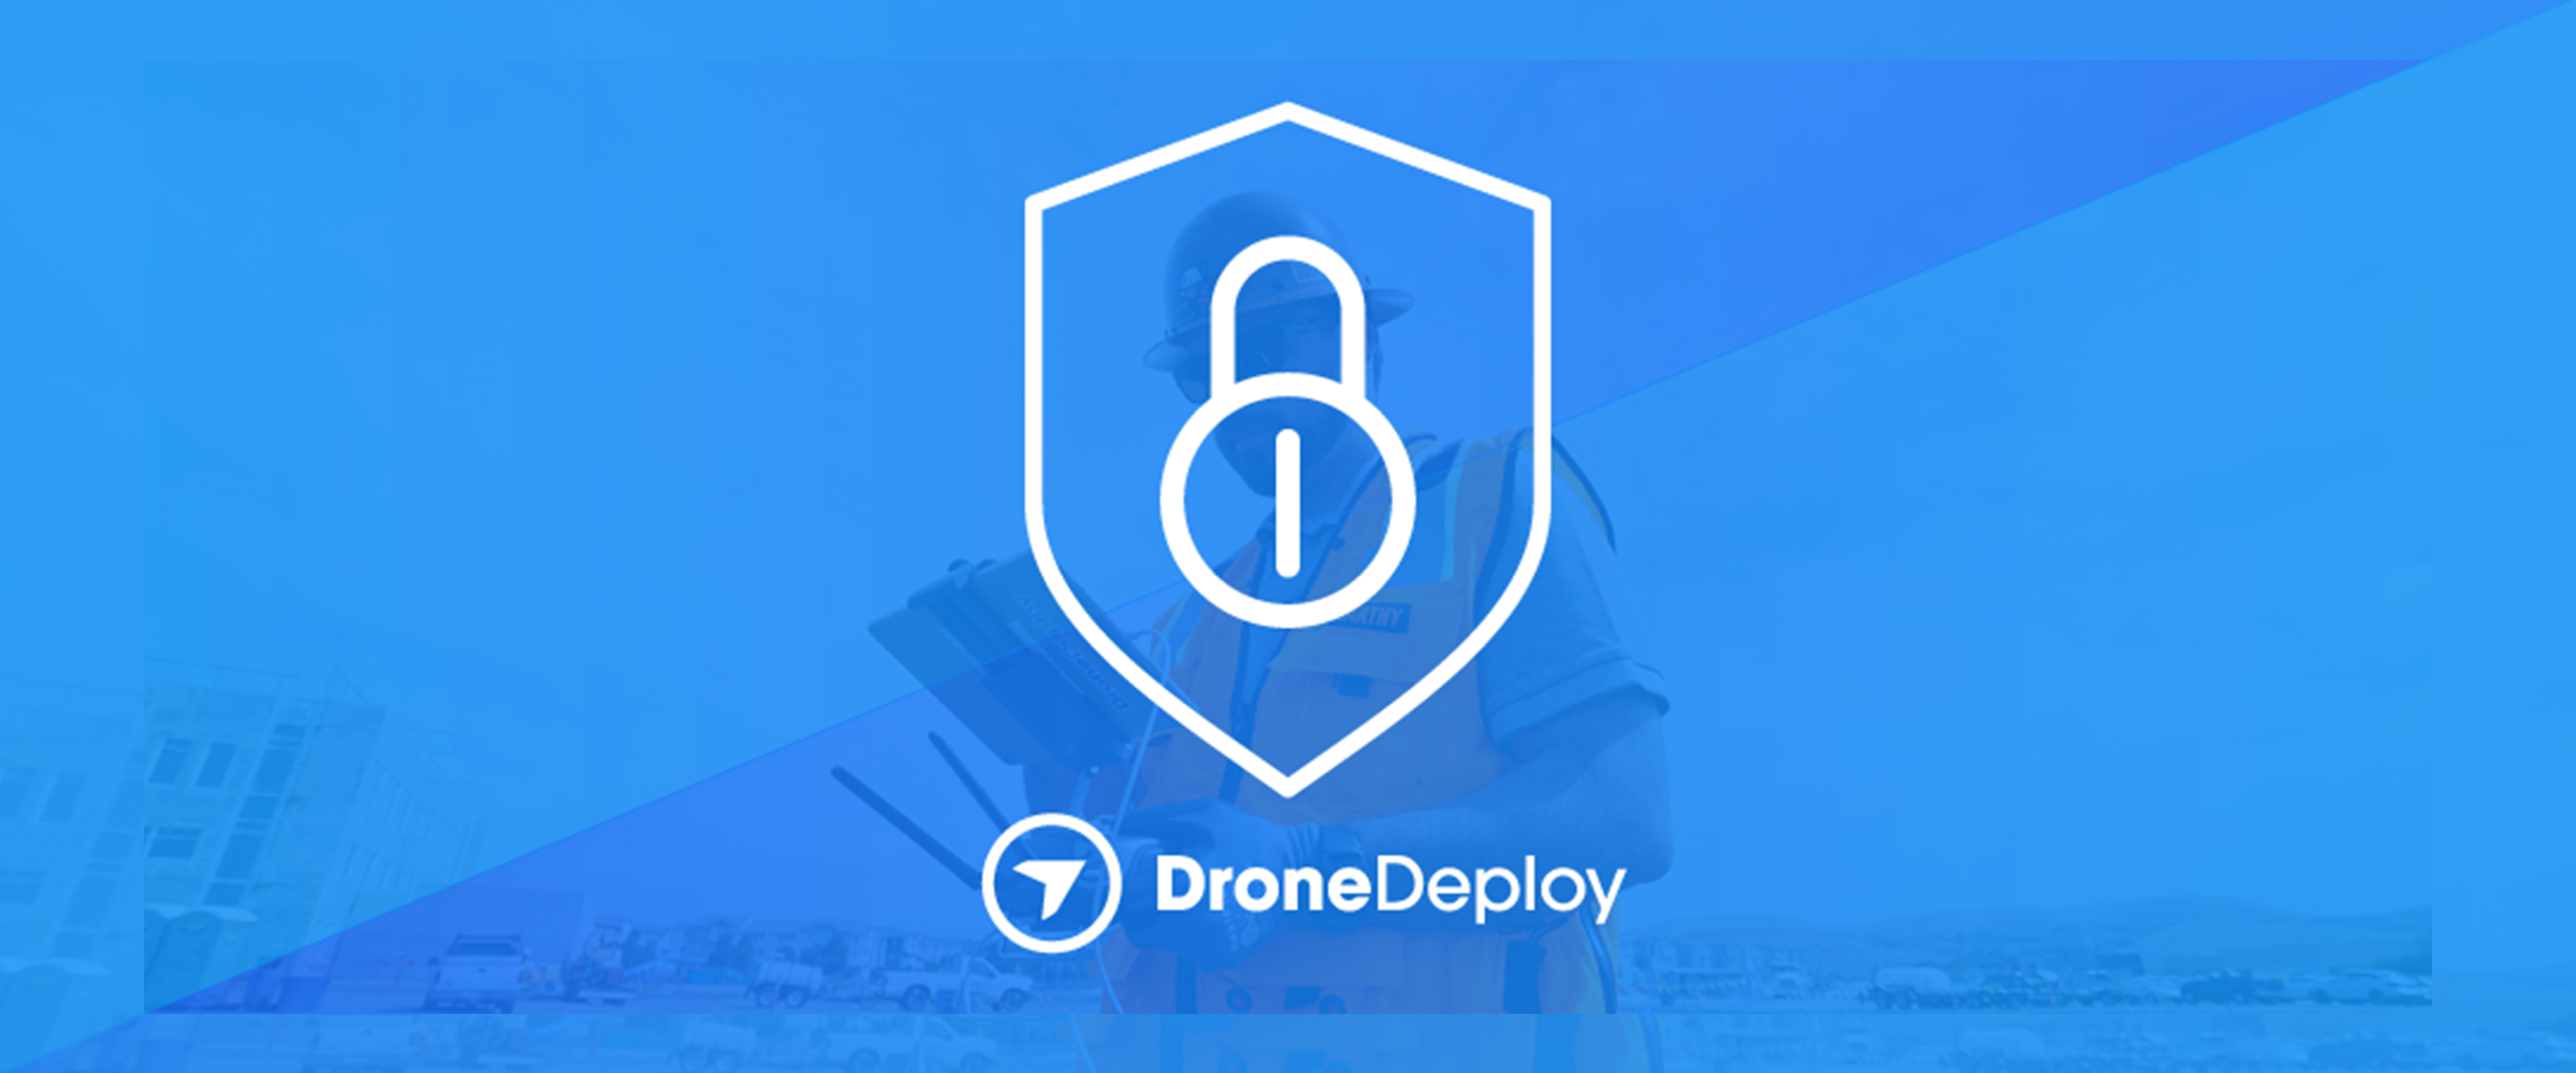 Exploring container security: How DroneDeploy achieved ISO-27001